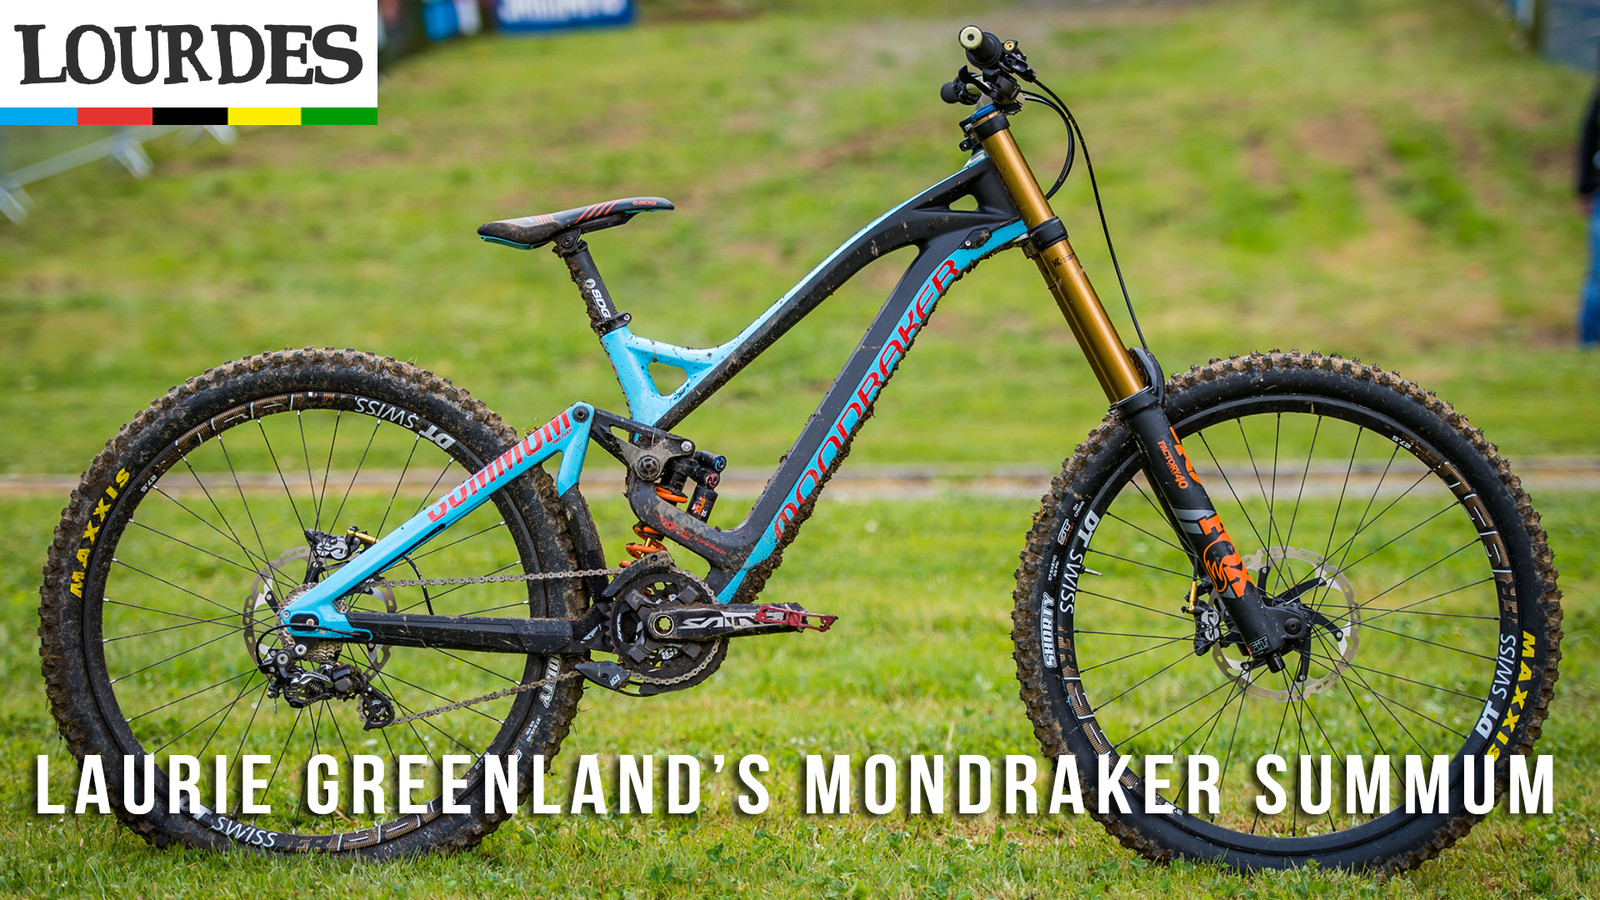 Pro Bike Check: Laurie Greenland's Mondraker Summum